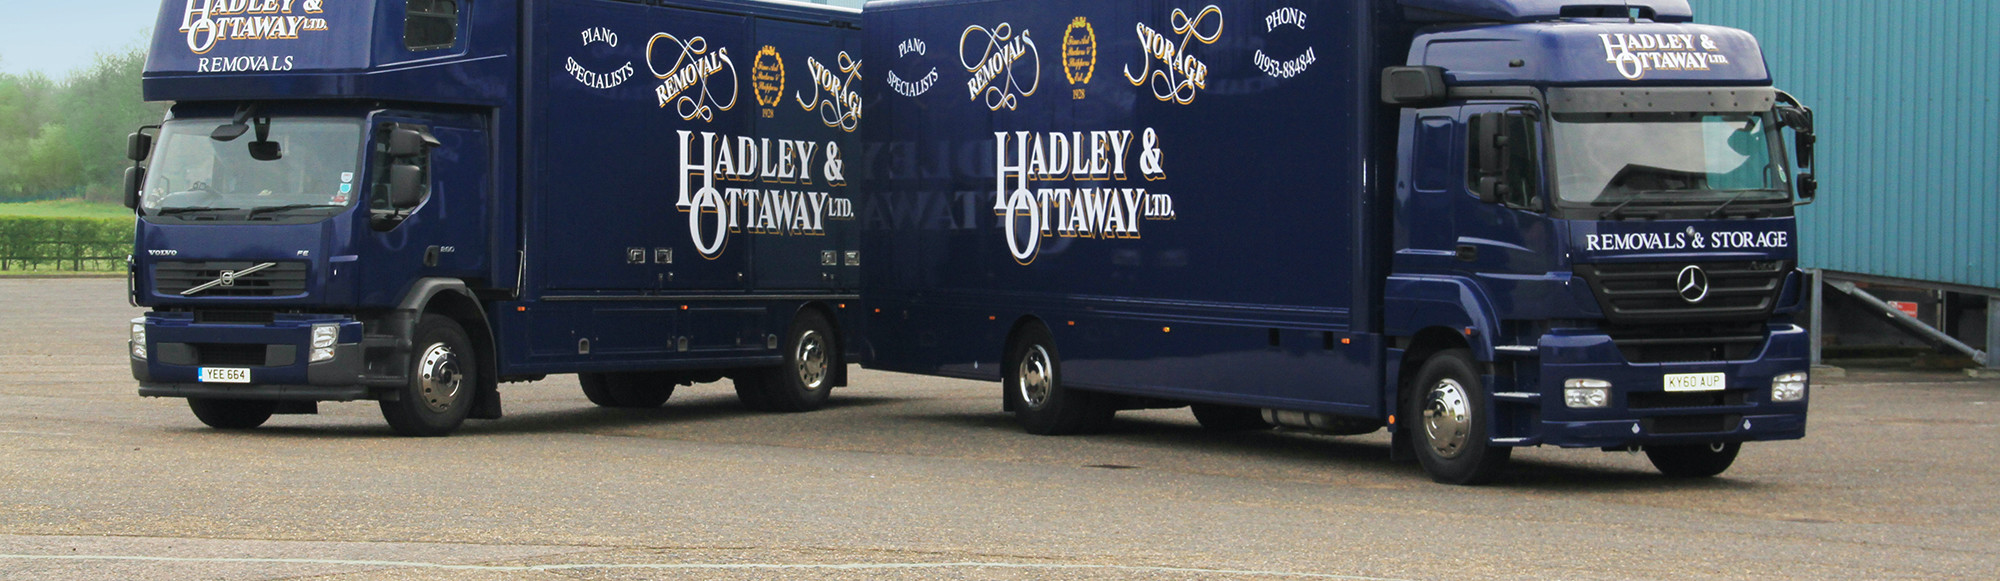 Hadley & Ottaway corporate and business removals